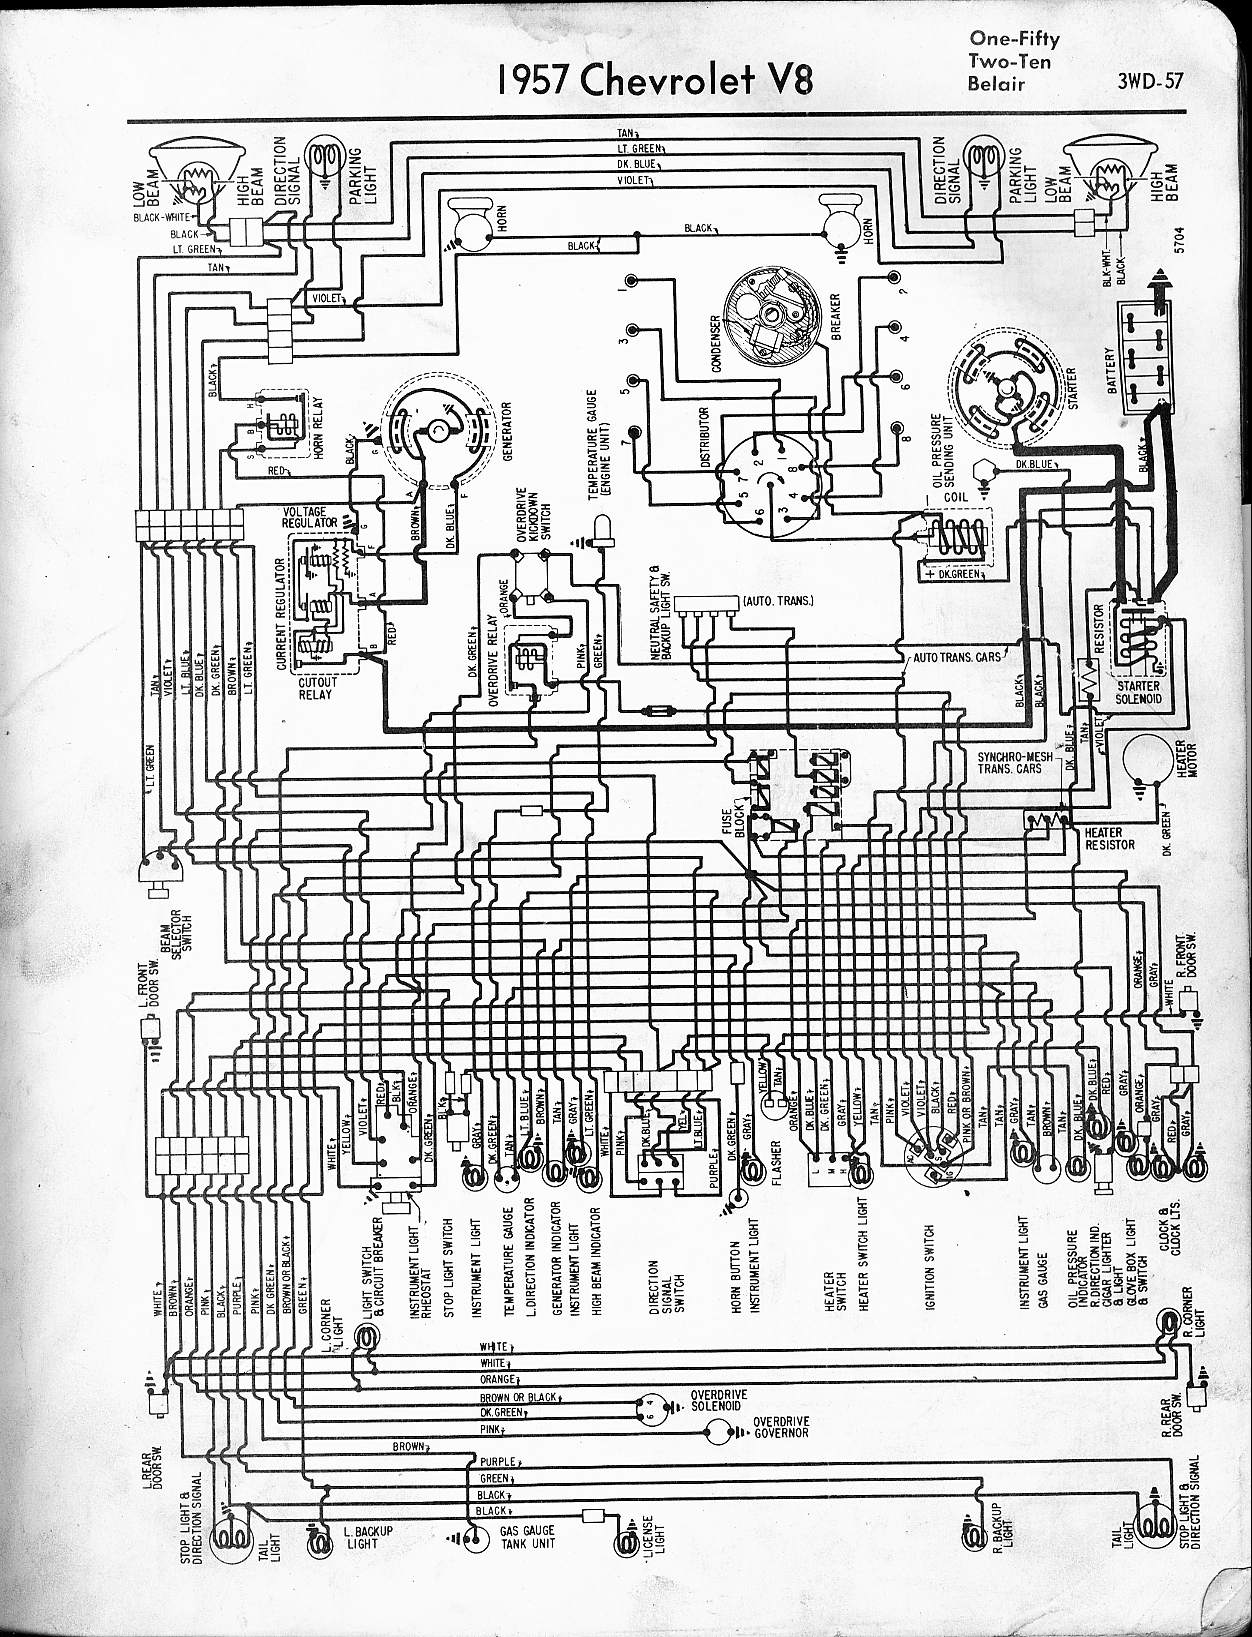 MWireChev57_3WD 057 57 65 chevy wiring diagrams 57 chevy truck wiring harness at mifinder.co